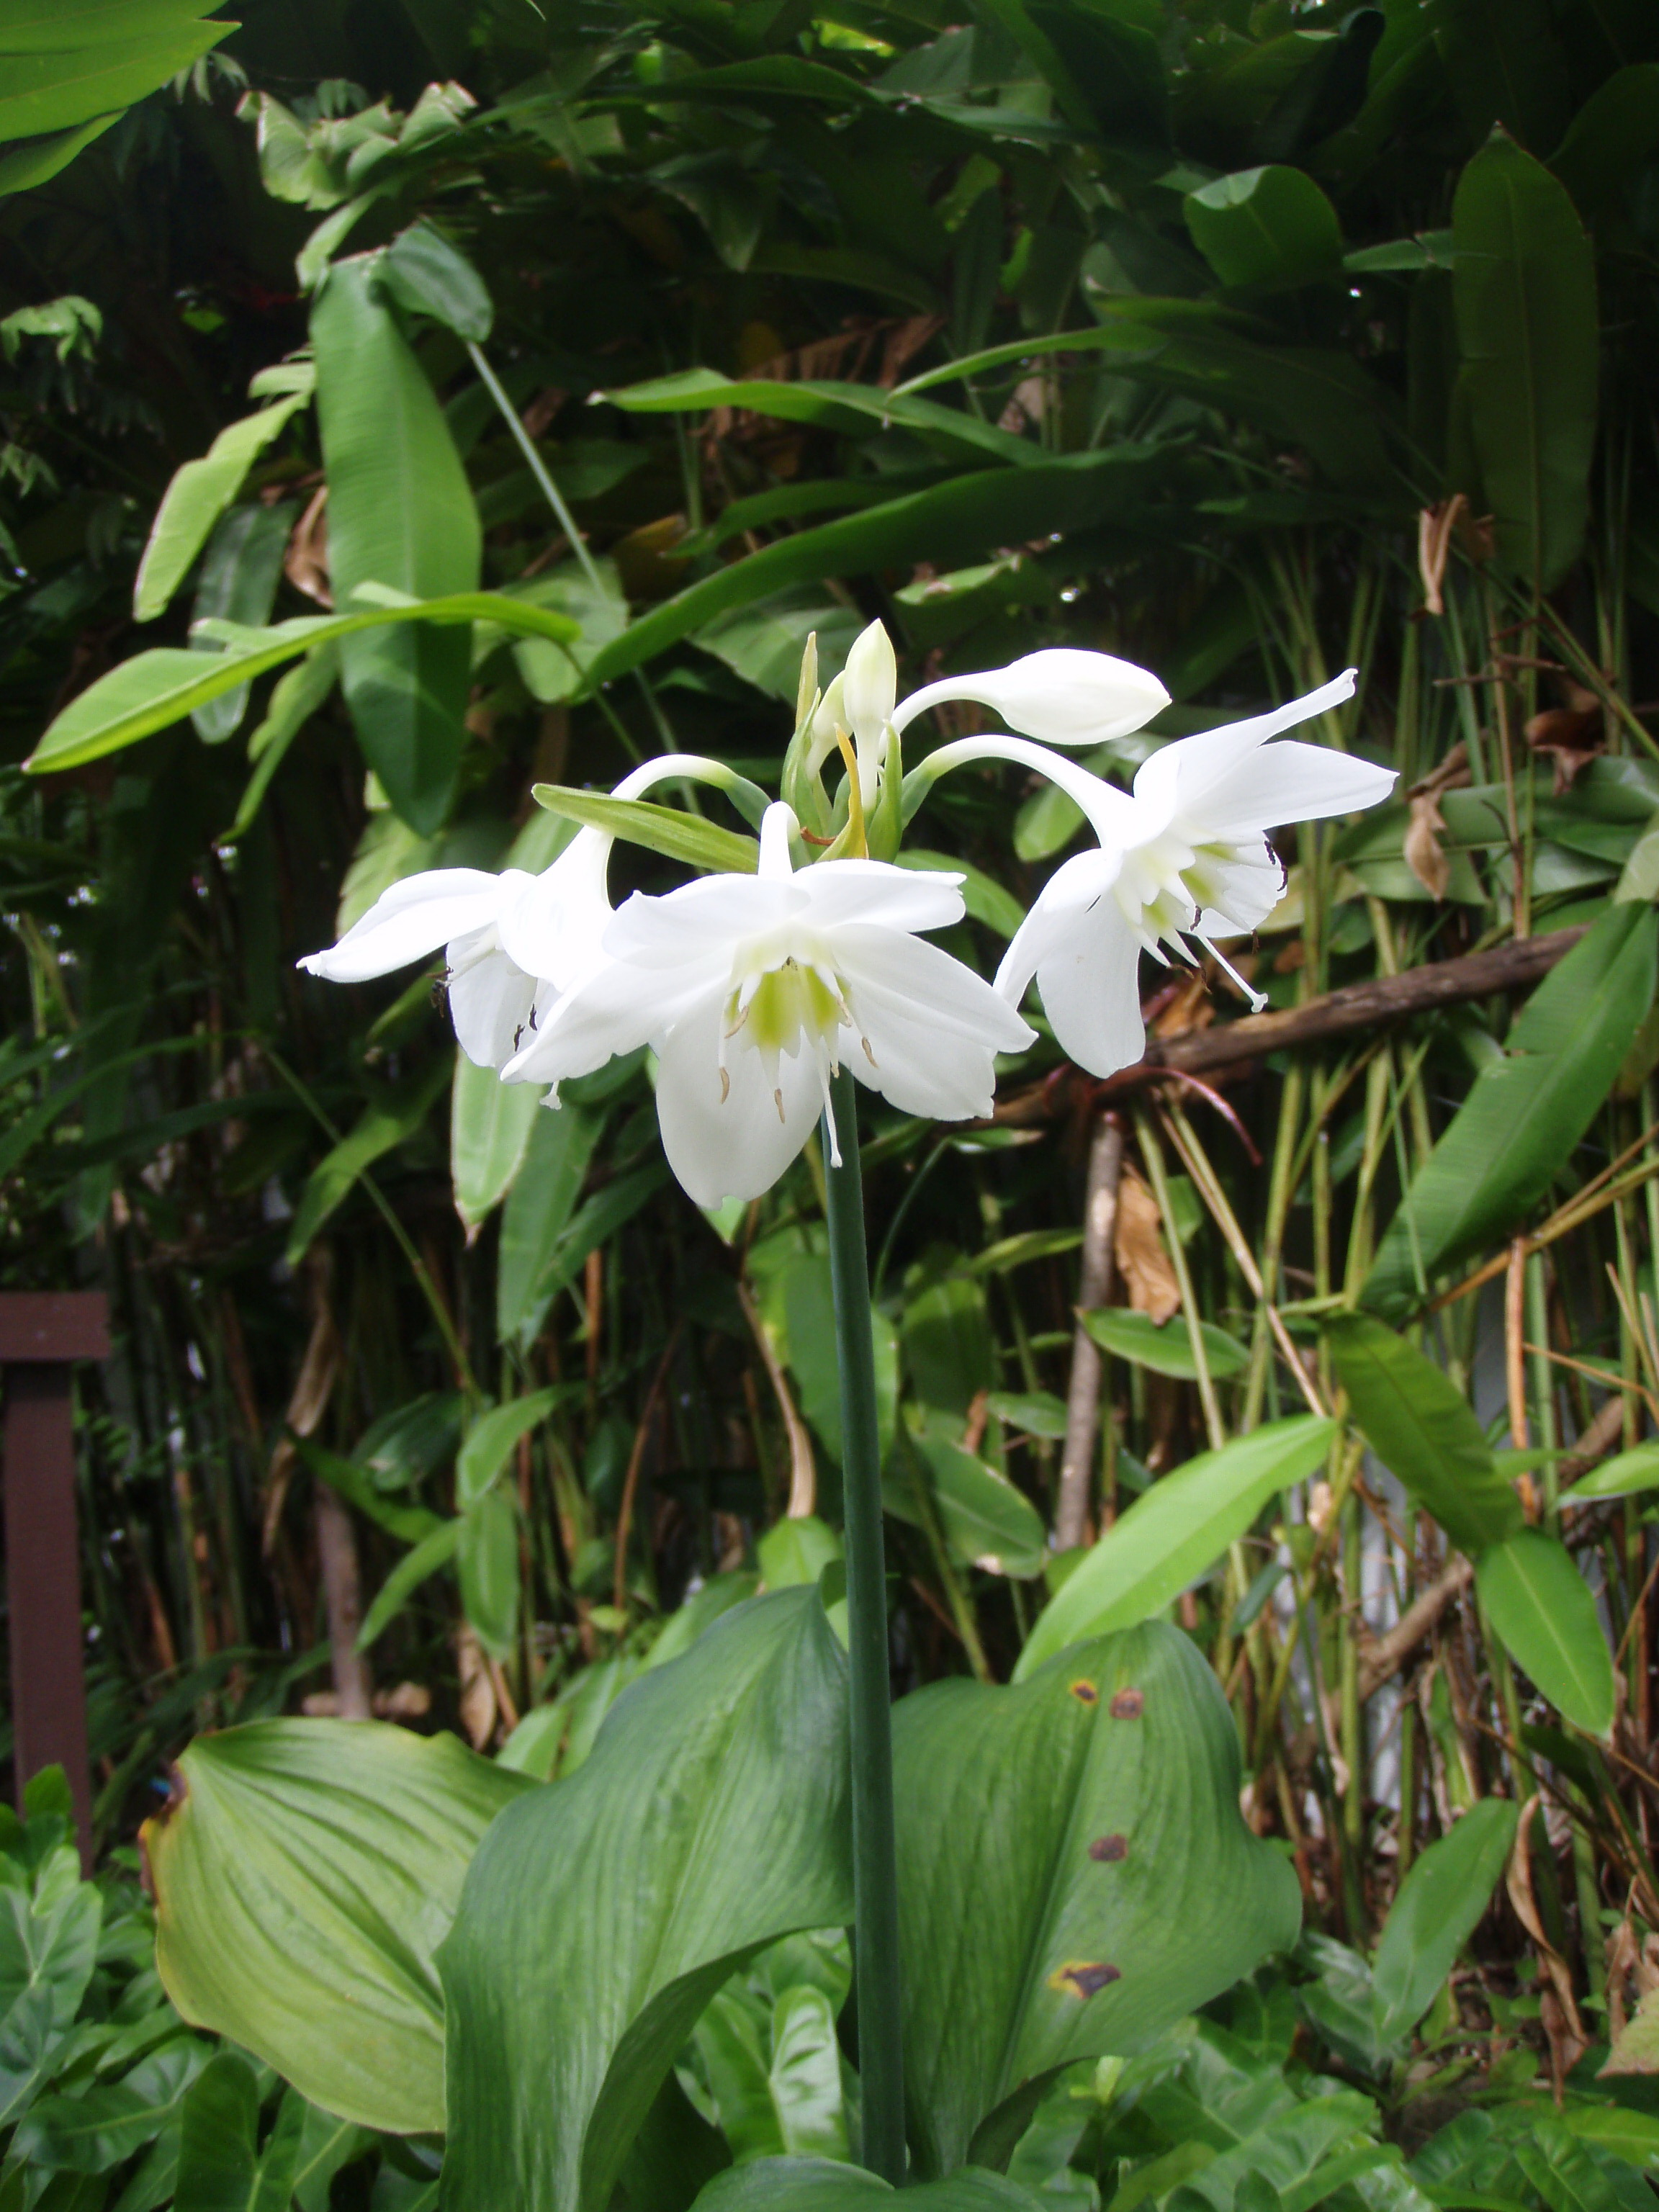 Mahachok Lovely Tropical Bulb Plants In Thailand With